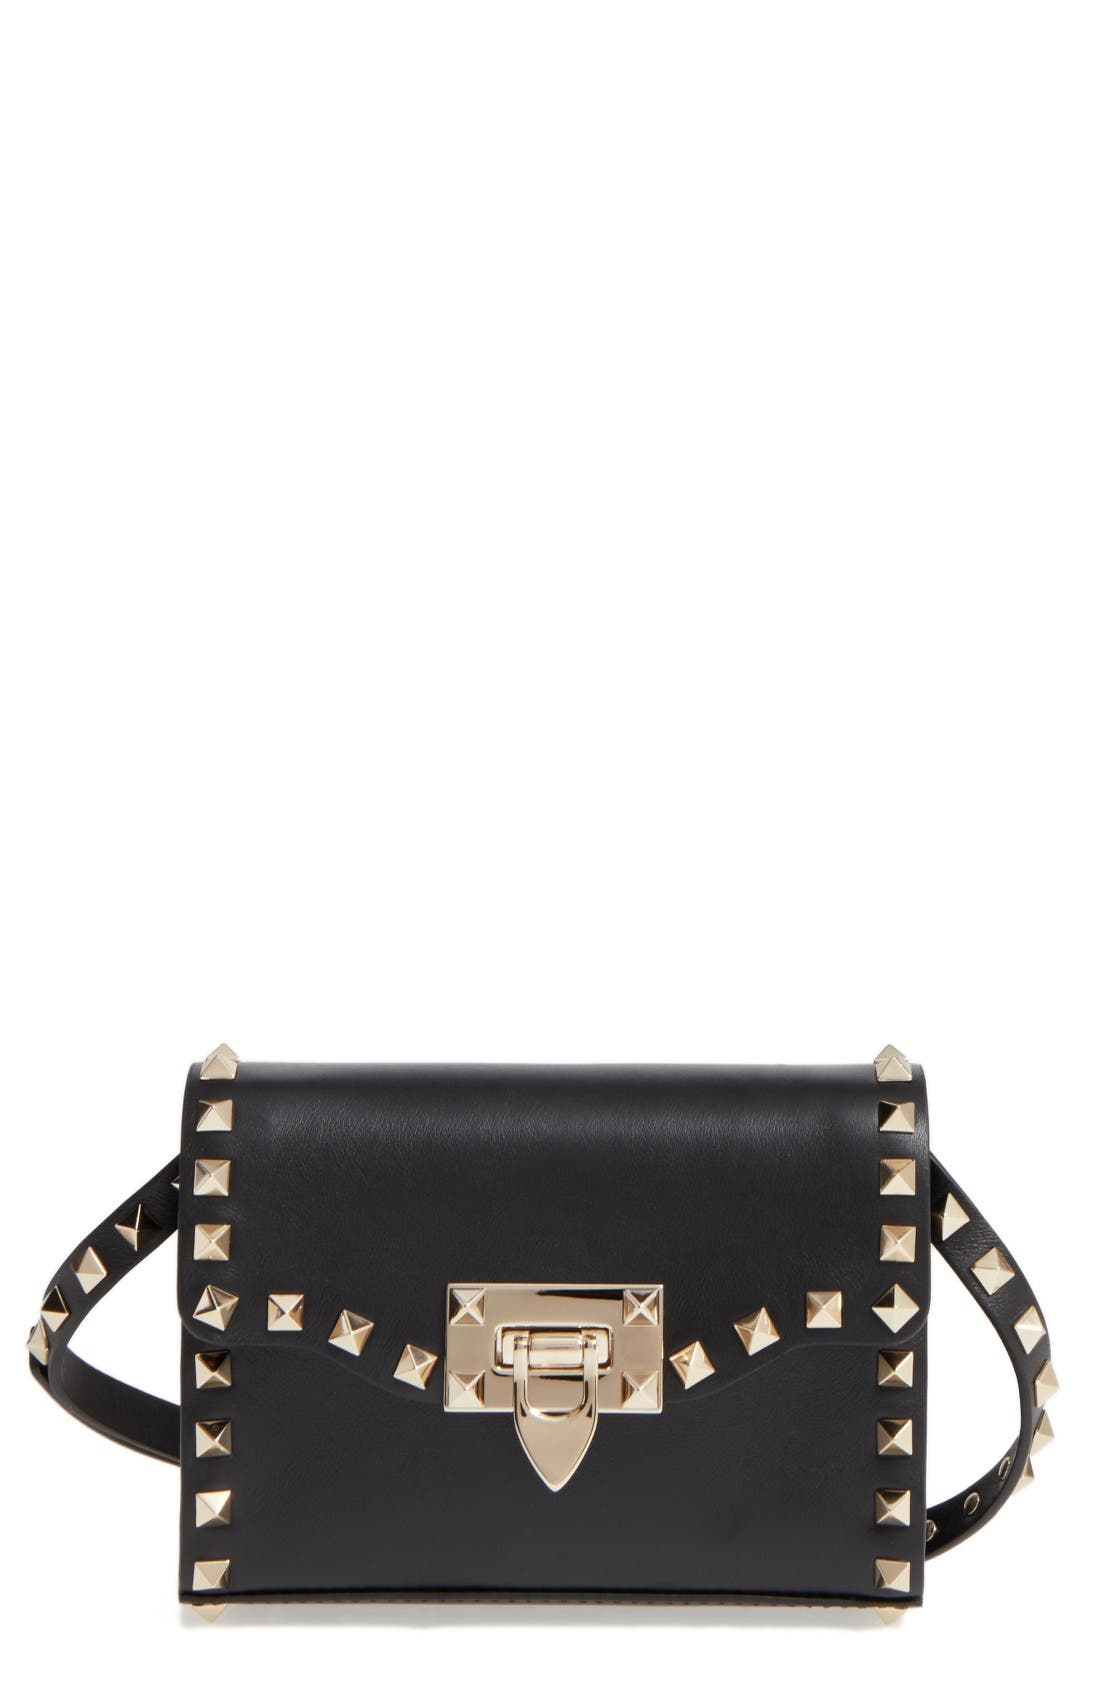 Small Rockstud Leather Shoulder Bag,                             Main thumbnail 1, color,                             Nero